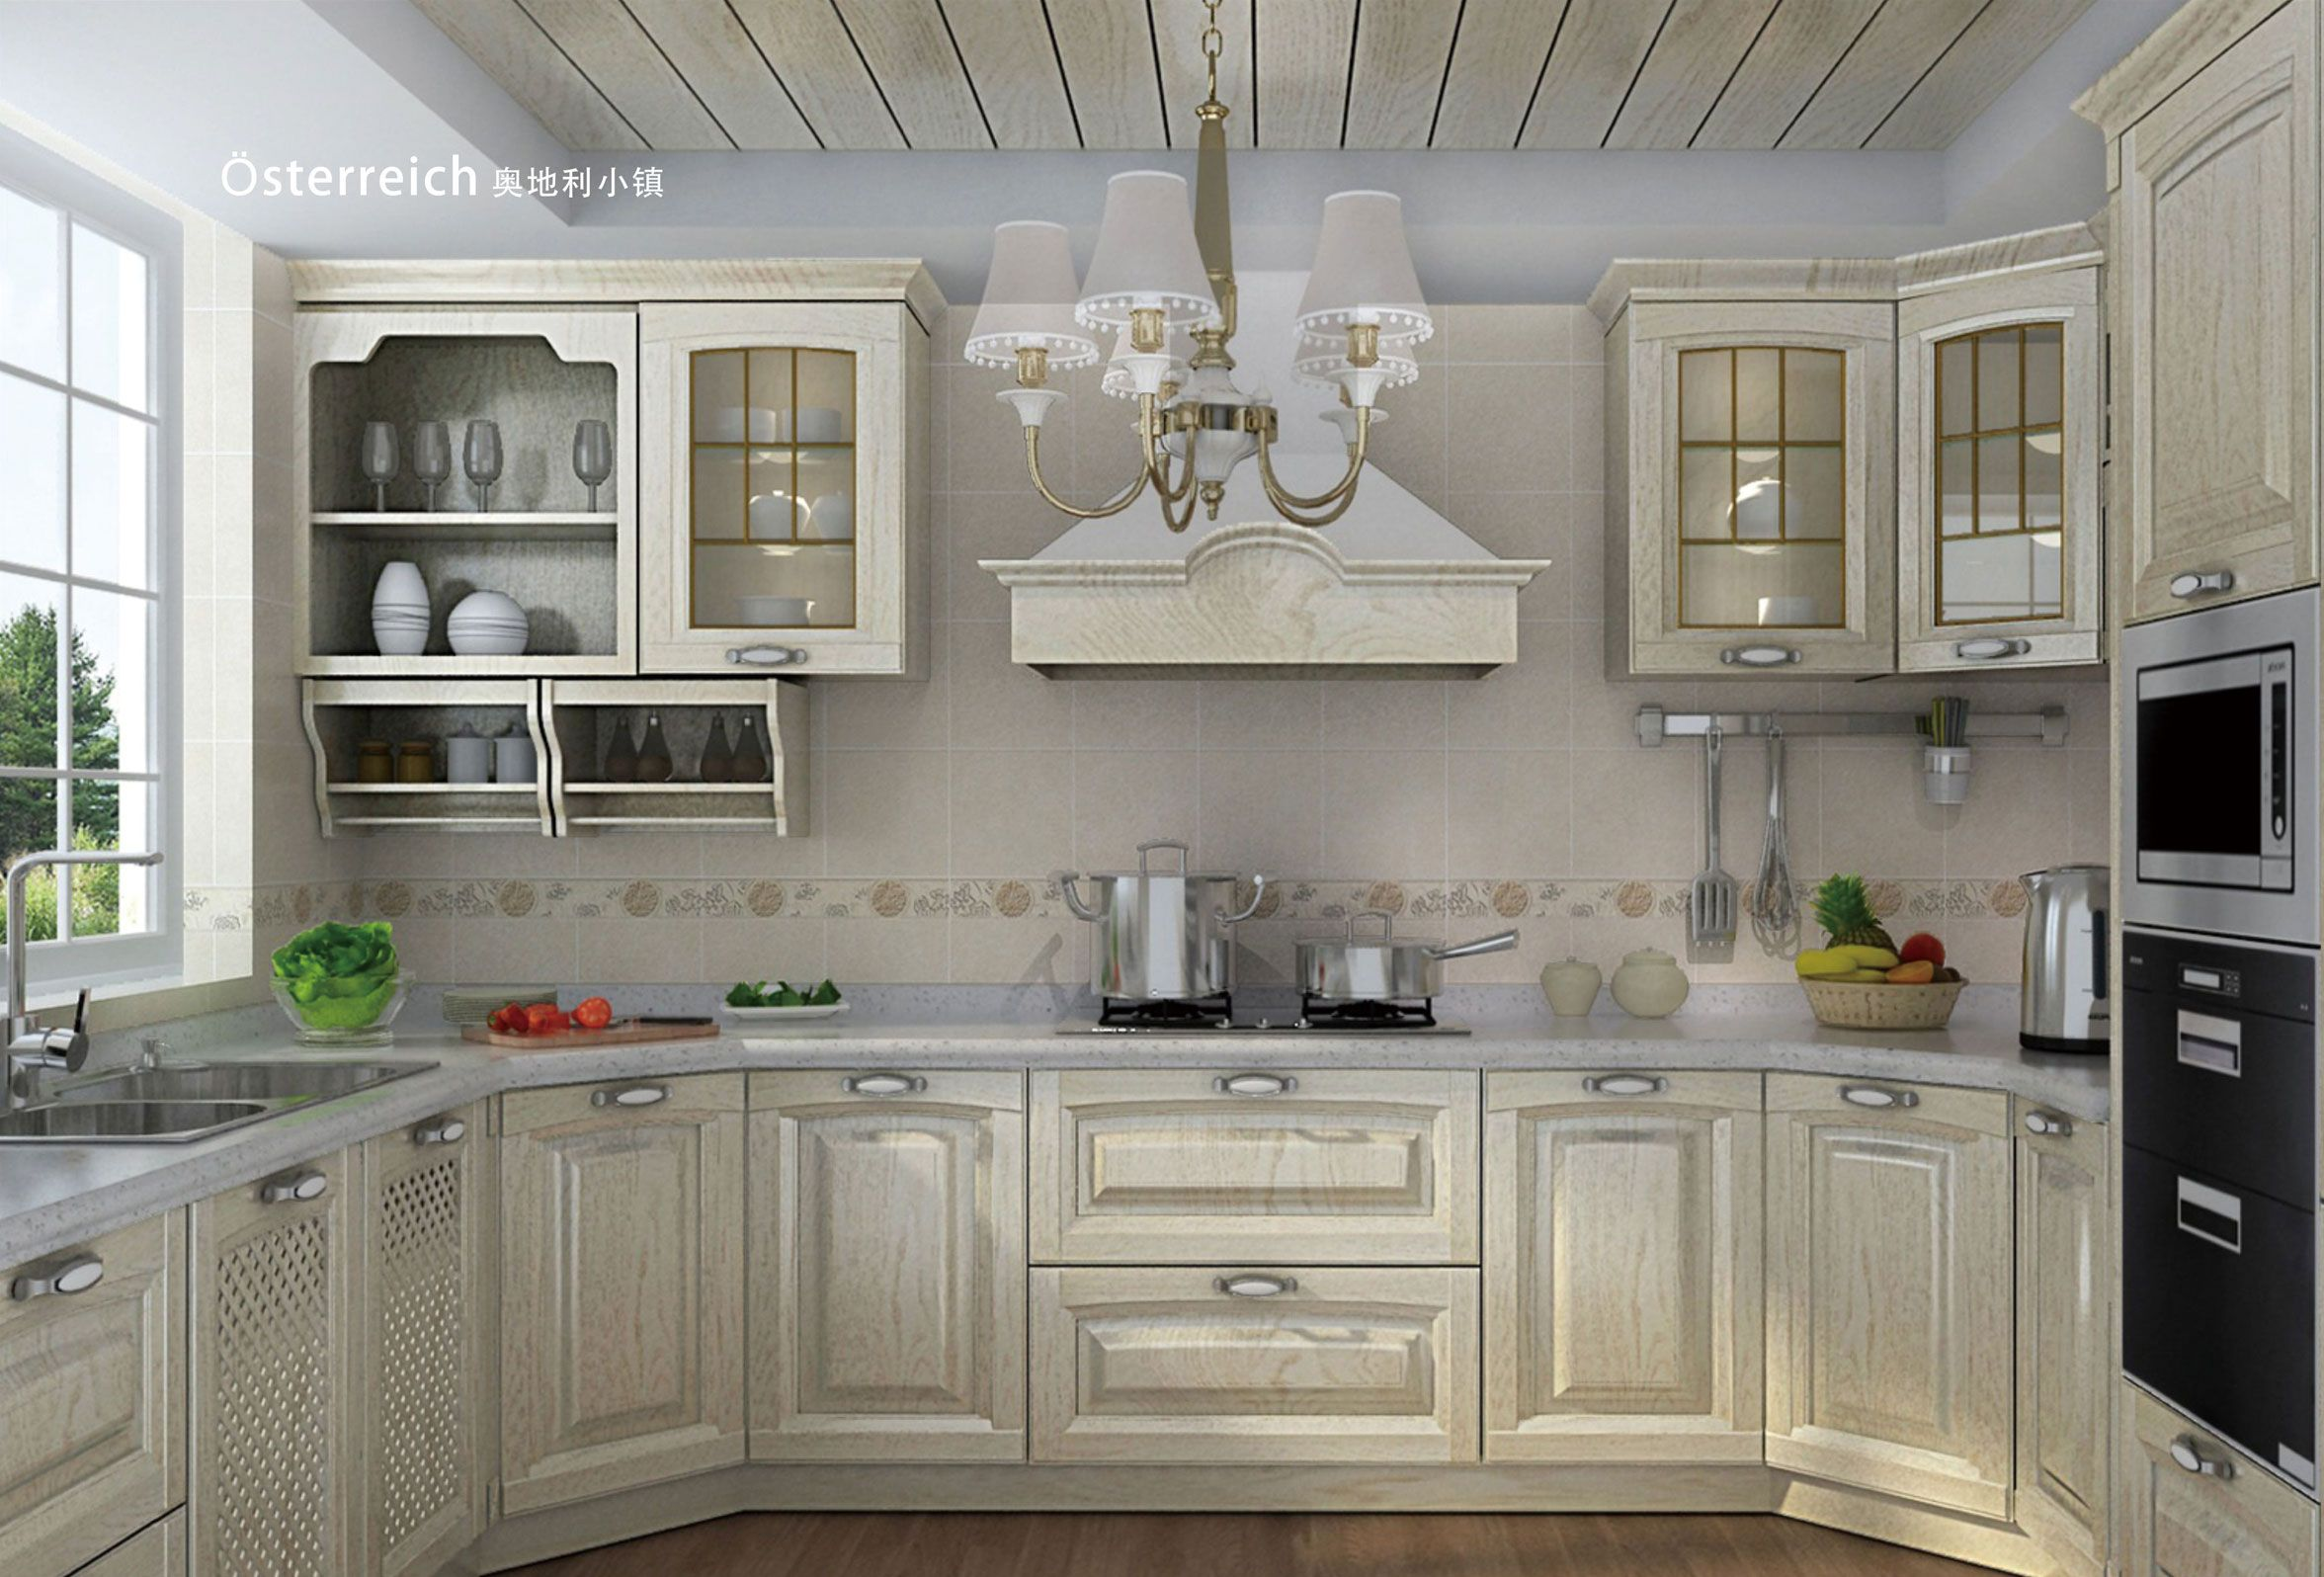 Yalig Solid Wood Kitchen Cabinet Kitchen Cabinets Kitchen Cabinet Manufacturers Solid Wood Kitchen Cabinets